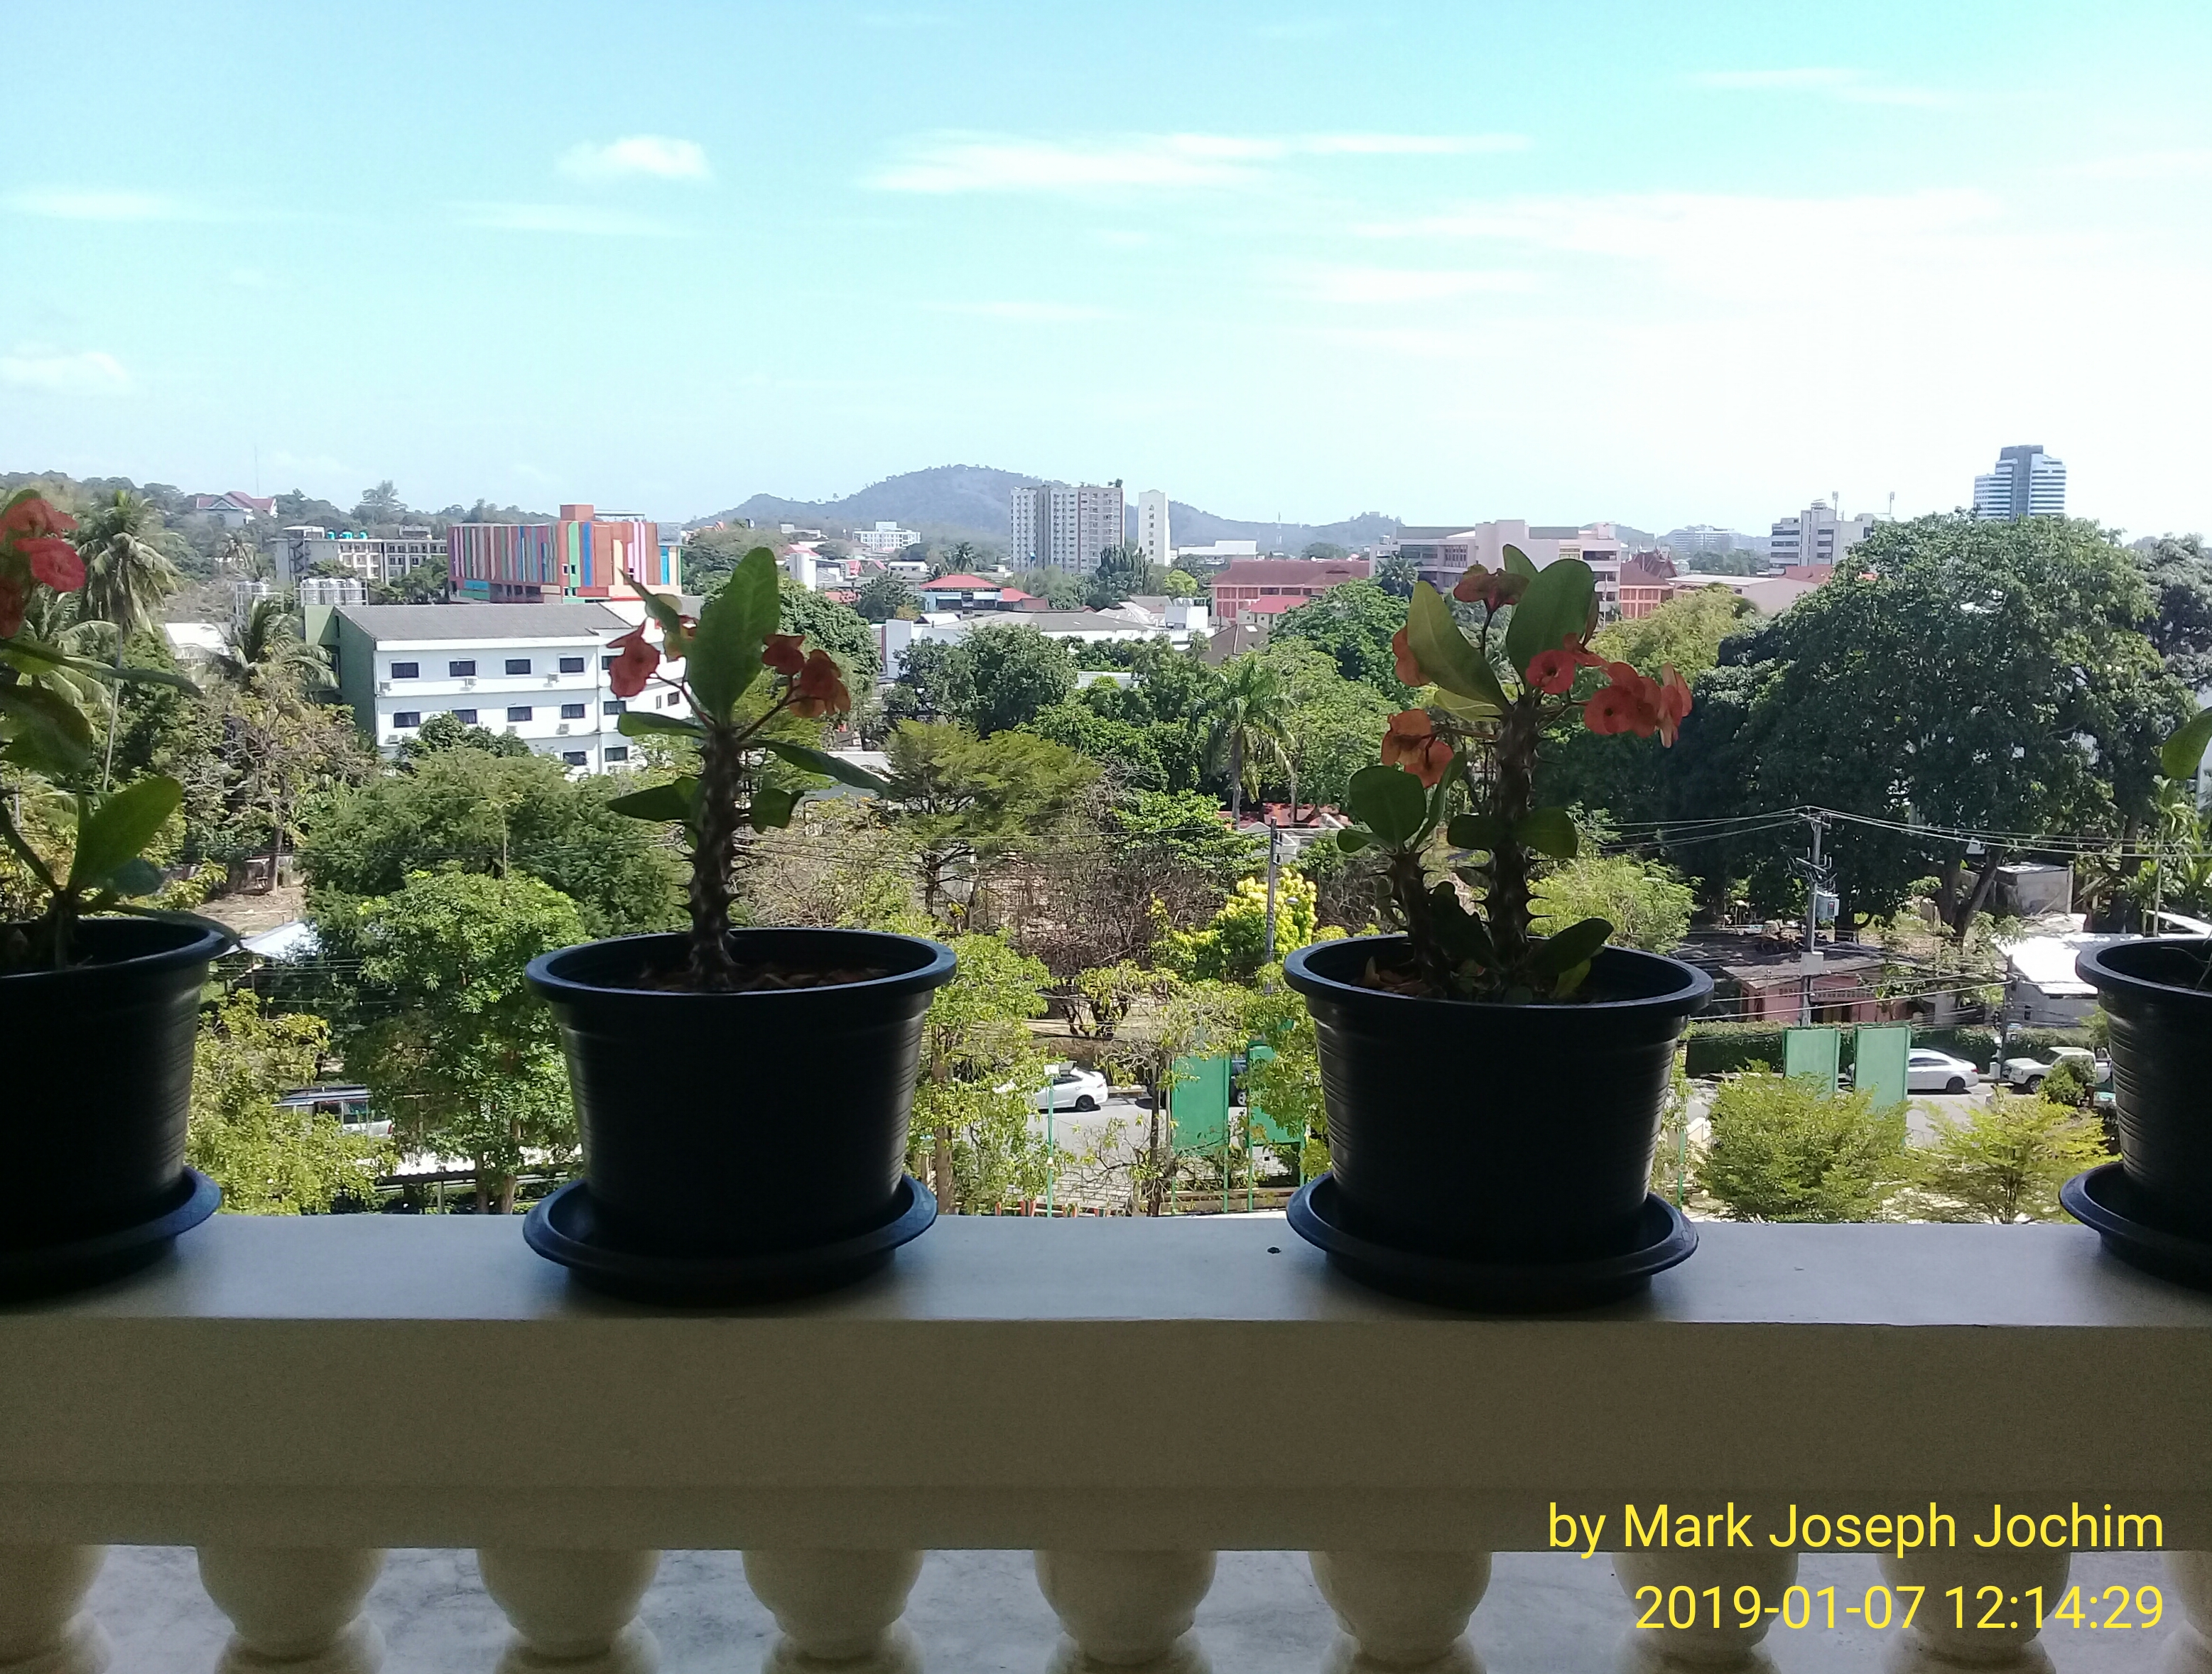 The view from my new in-school office on the 6th floor at Plukpanya Municipal School in Phuket, Thailand.